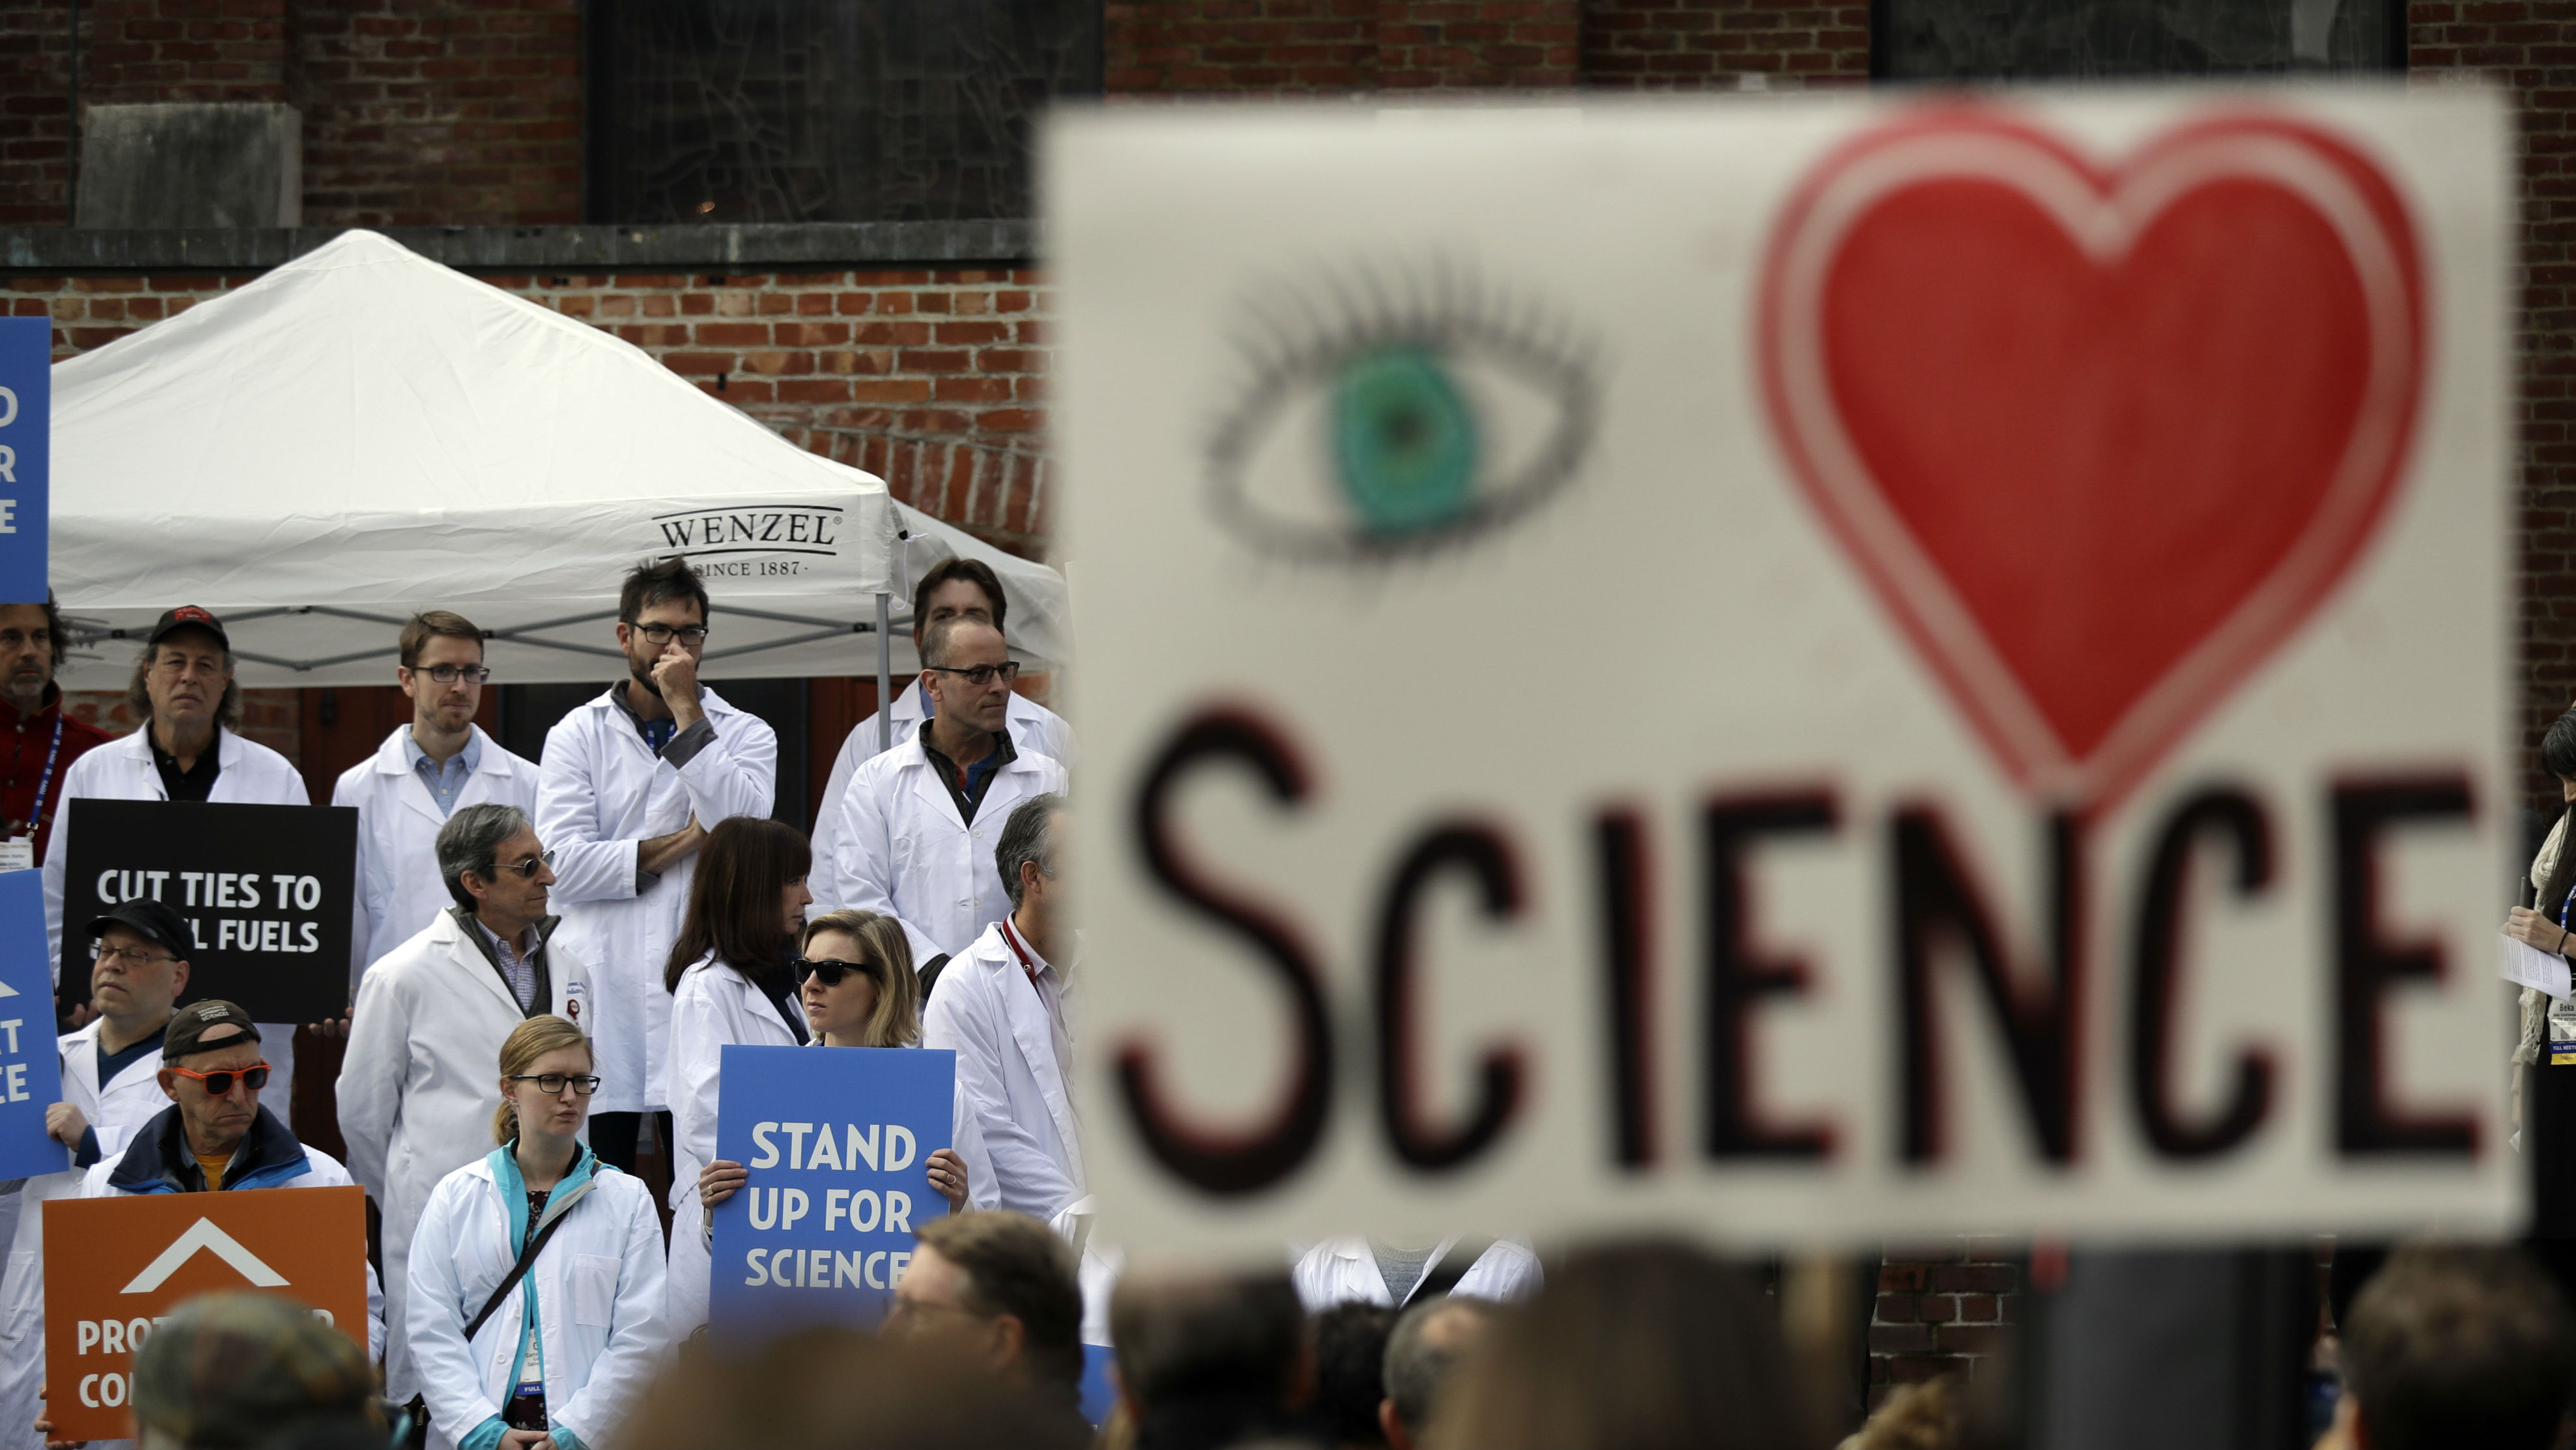 March for Science: A single thread on Reddit created a global